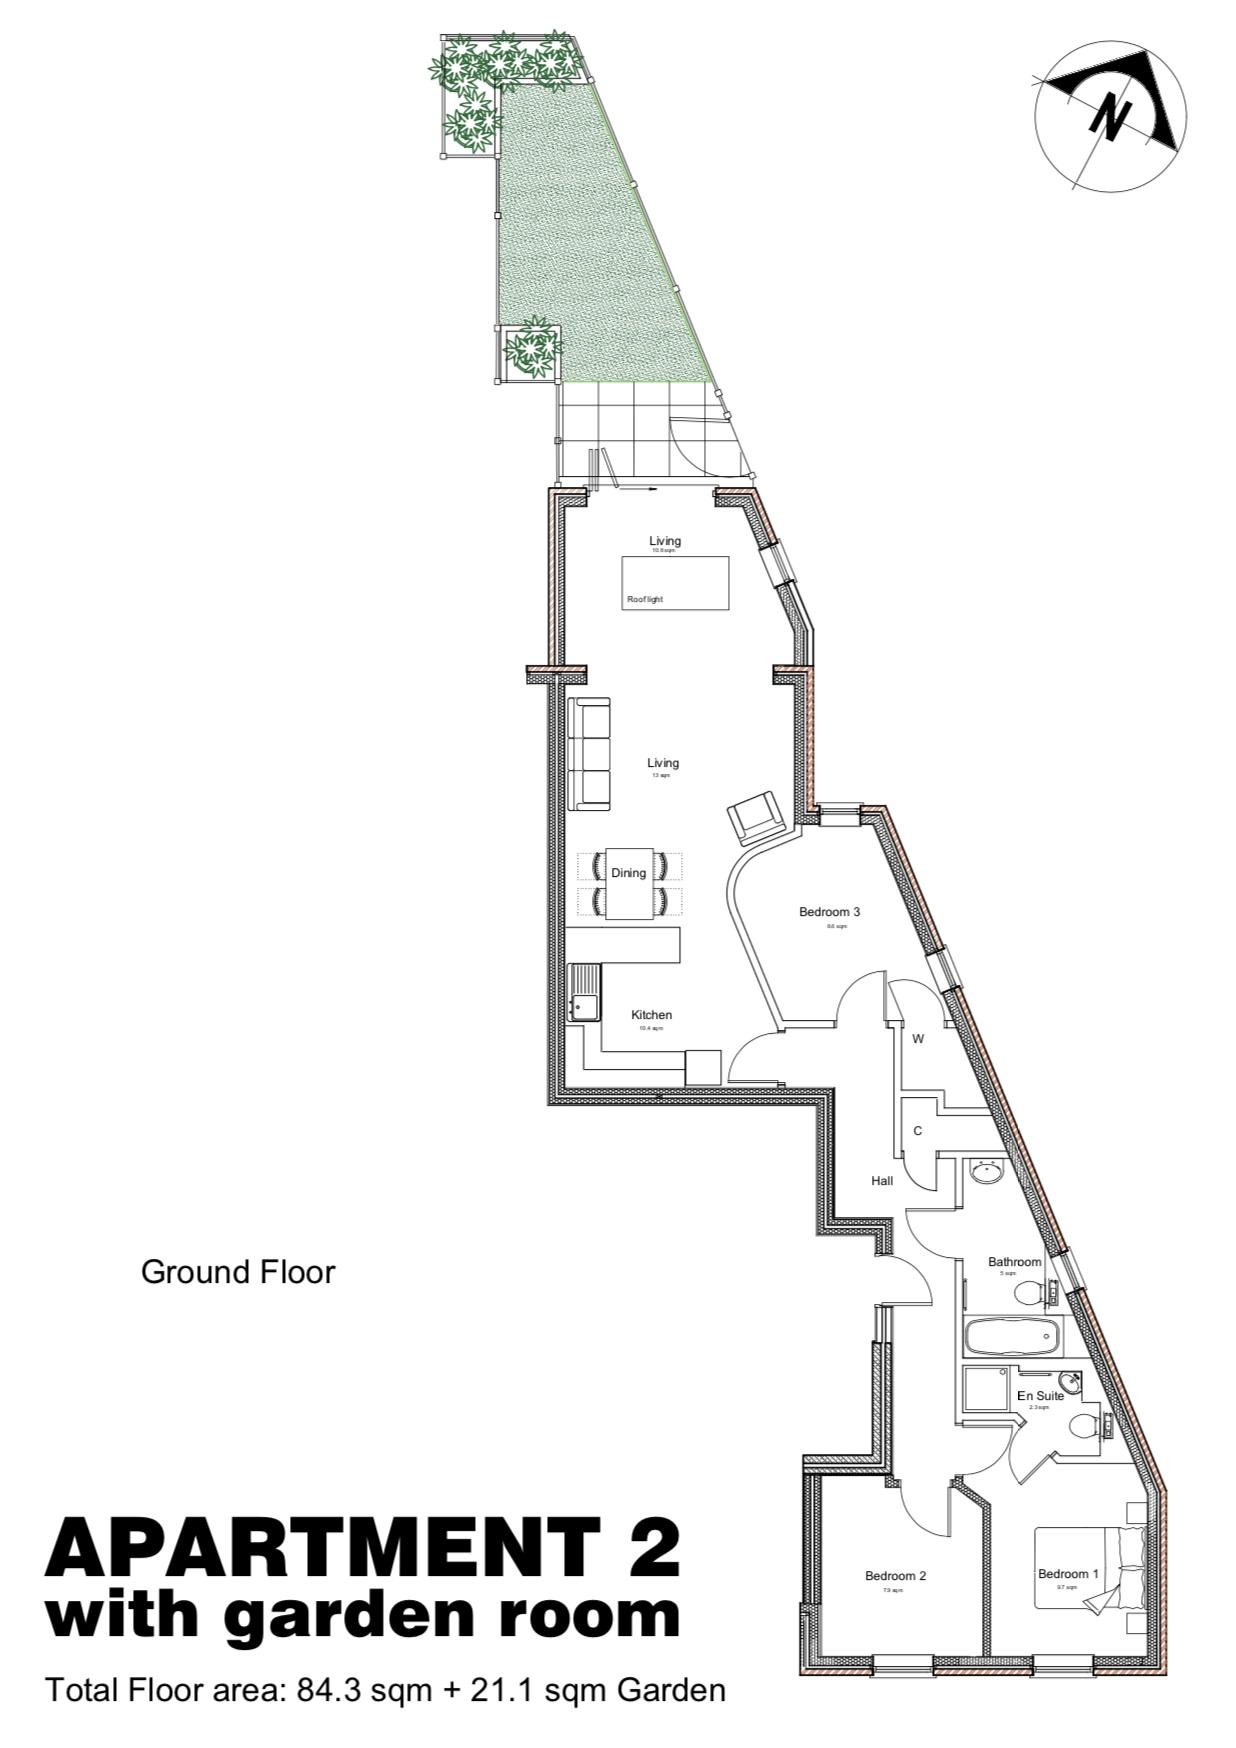 Proposed plan for additional living area